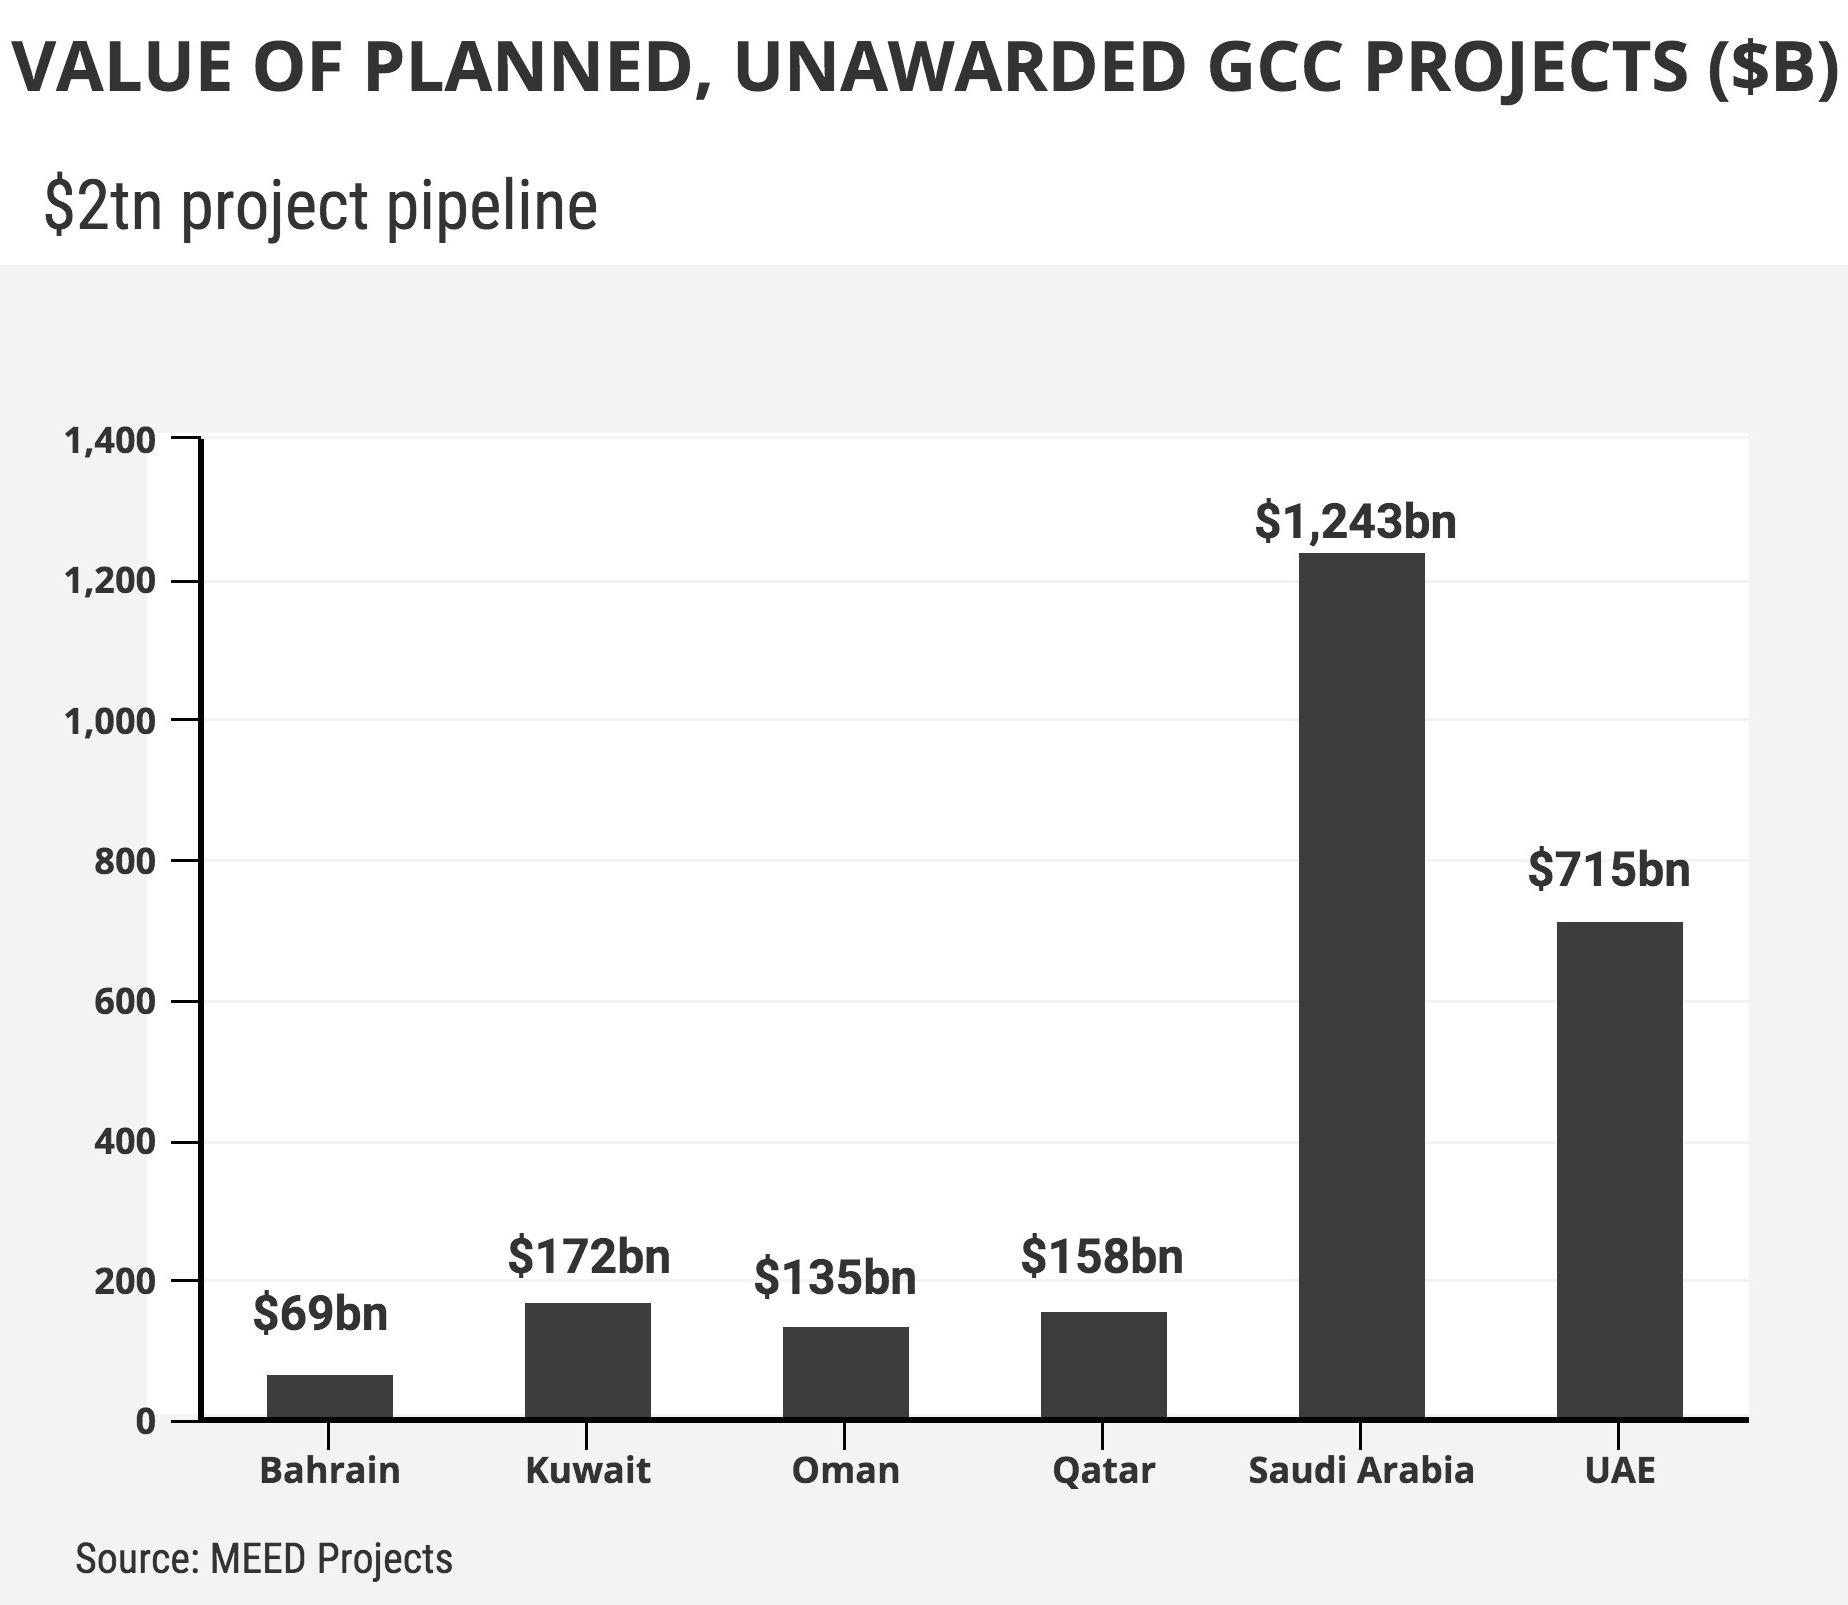 Value of Planned, Unawarded GCC Projects